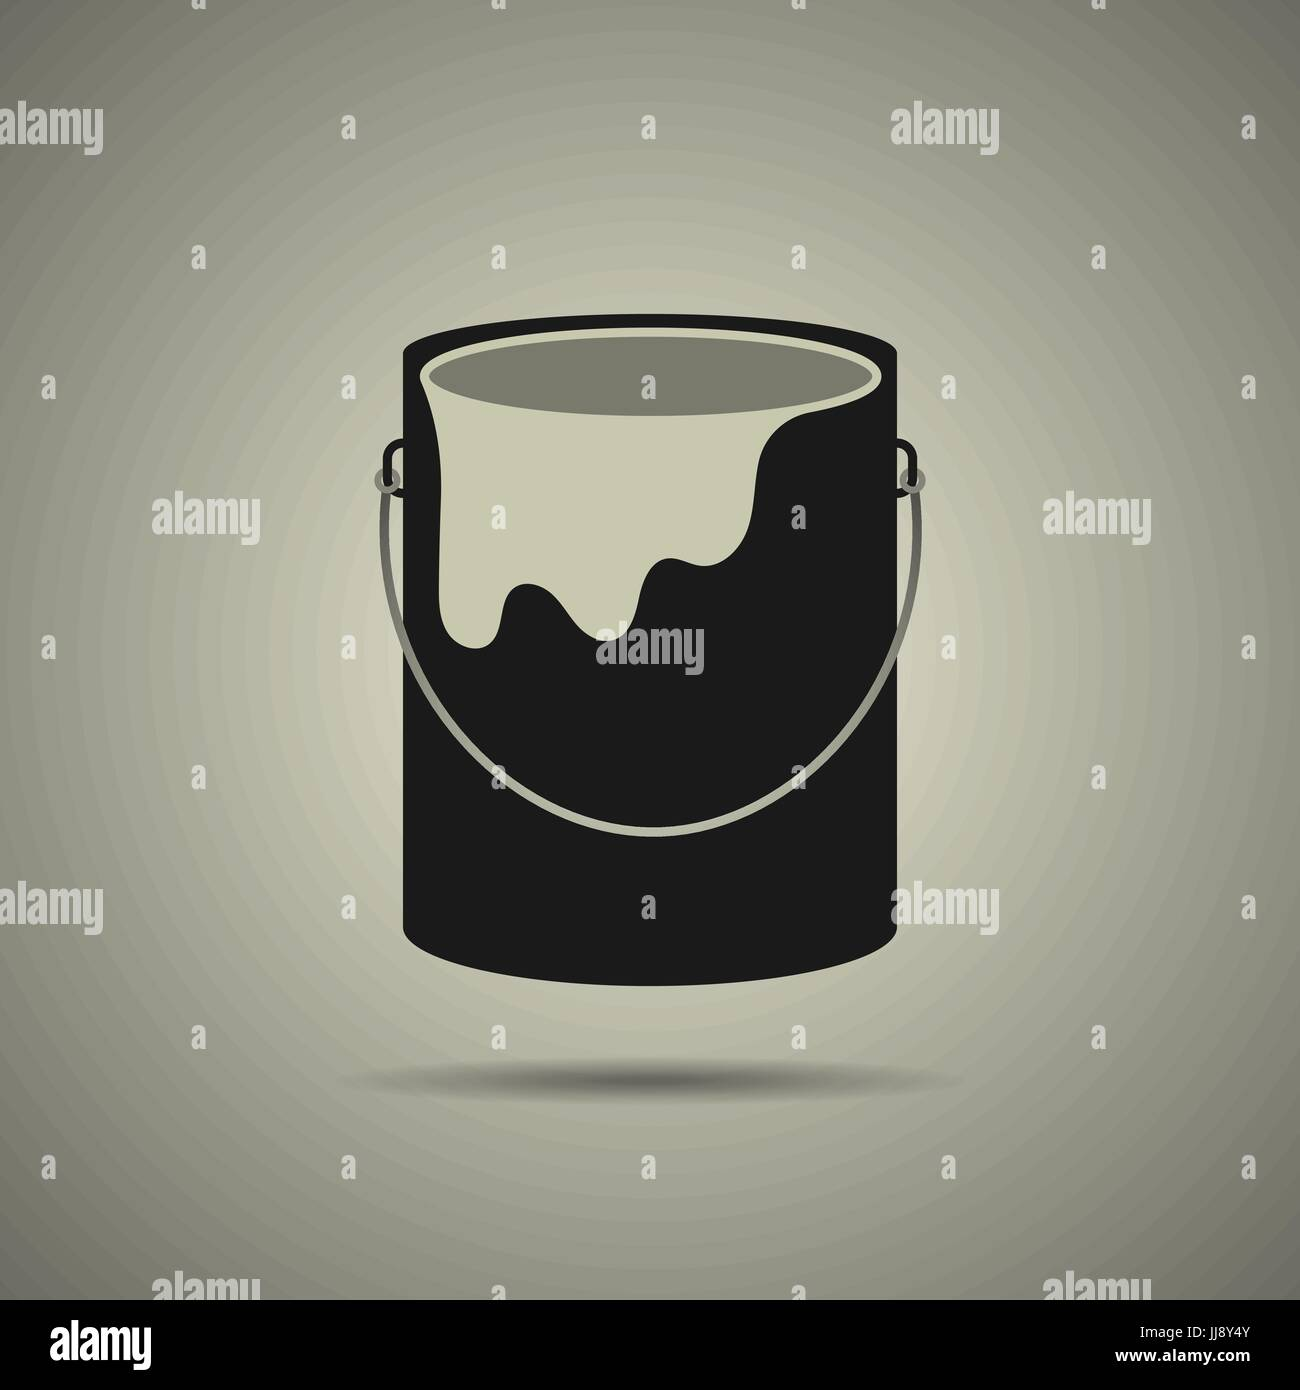 Paint bucket icon, black and white symbol. Modern, simple flat vector illustration for web site or mobile app - Stock Vector